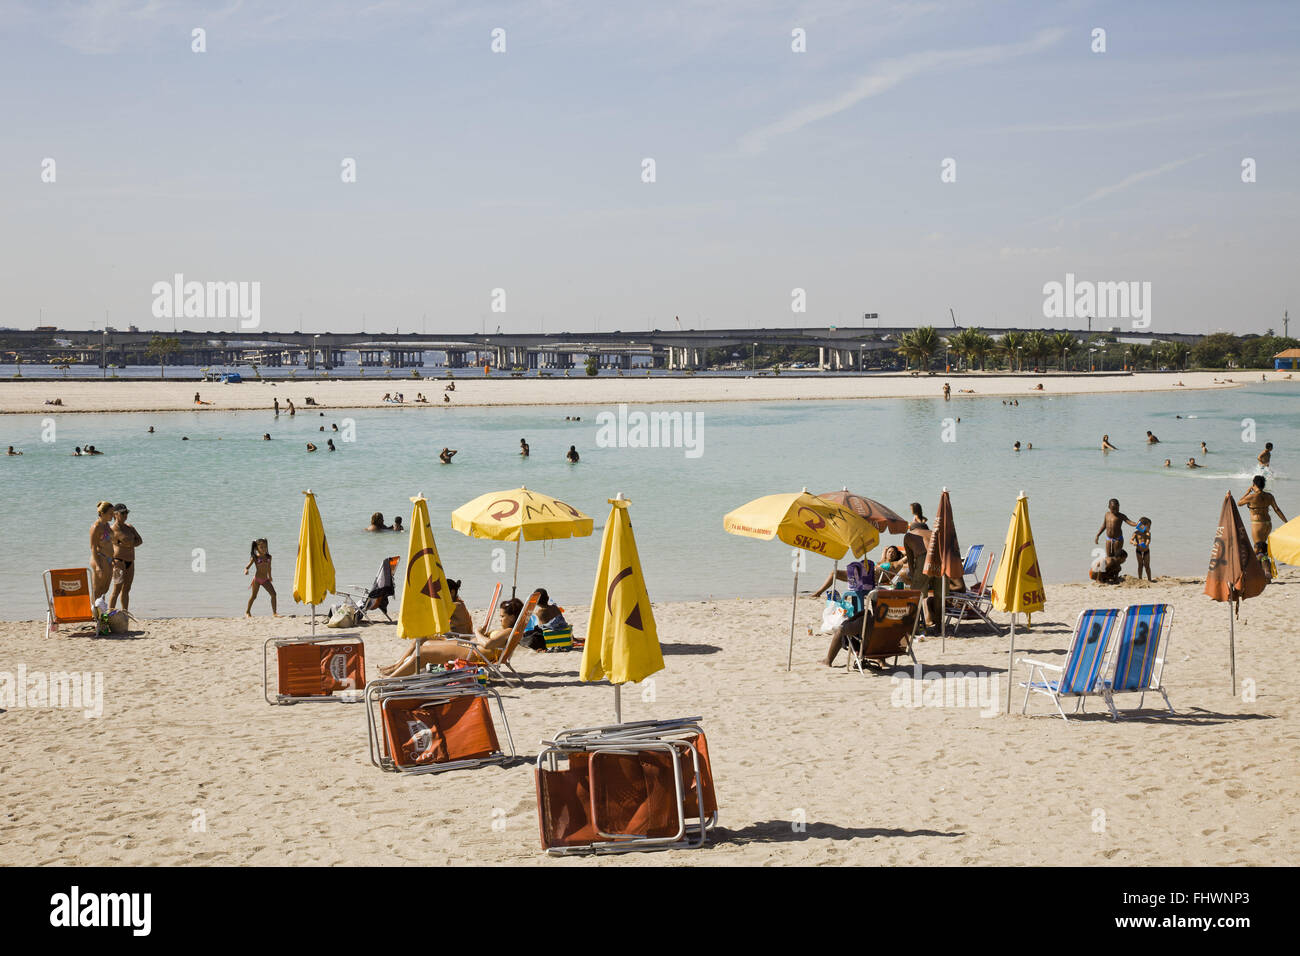 Of Palm Beach or Palm Piscinao Environmental Park - leisure area on a winter day - Stock Image